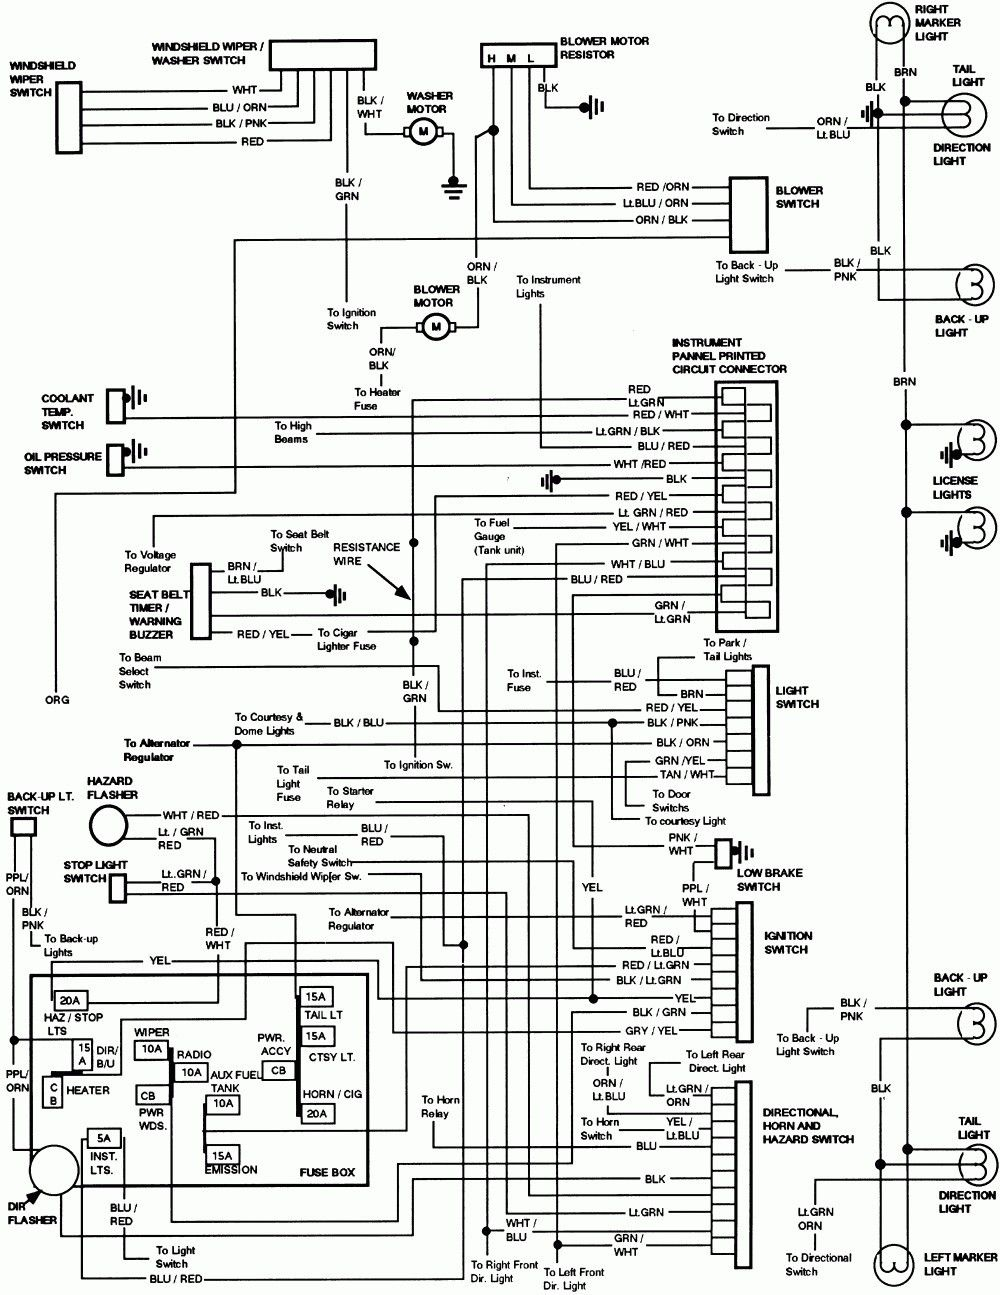 21 Best Sample Of Ford Wiring Diagrams Samples ,  https://bacamajalah.com/21-best-sample-of-ford-wiring-diagrams-samples/ ,  #diag… | F150, Diagram design, Ford f150Pinterest